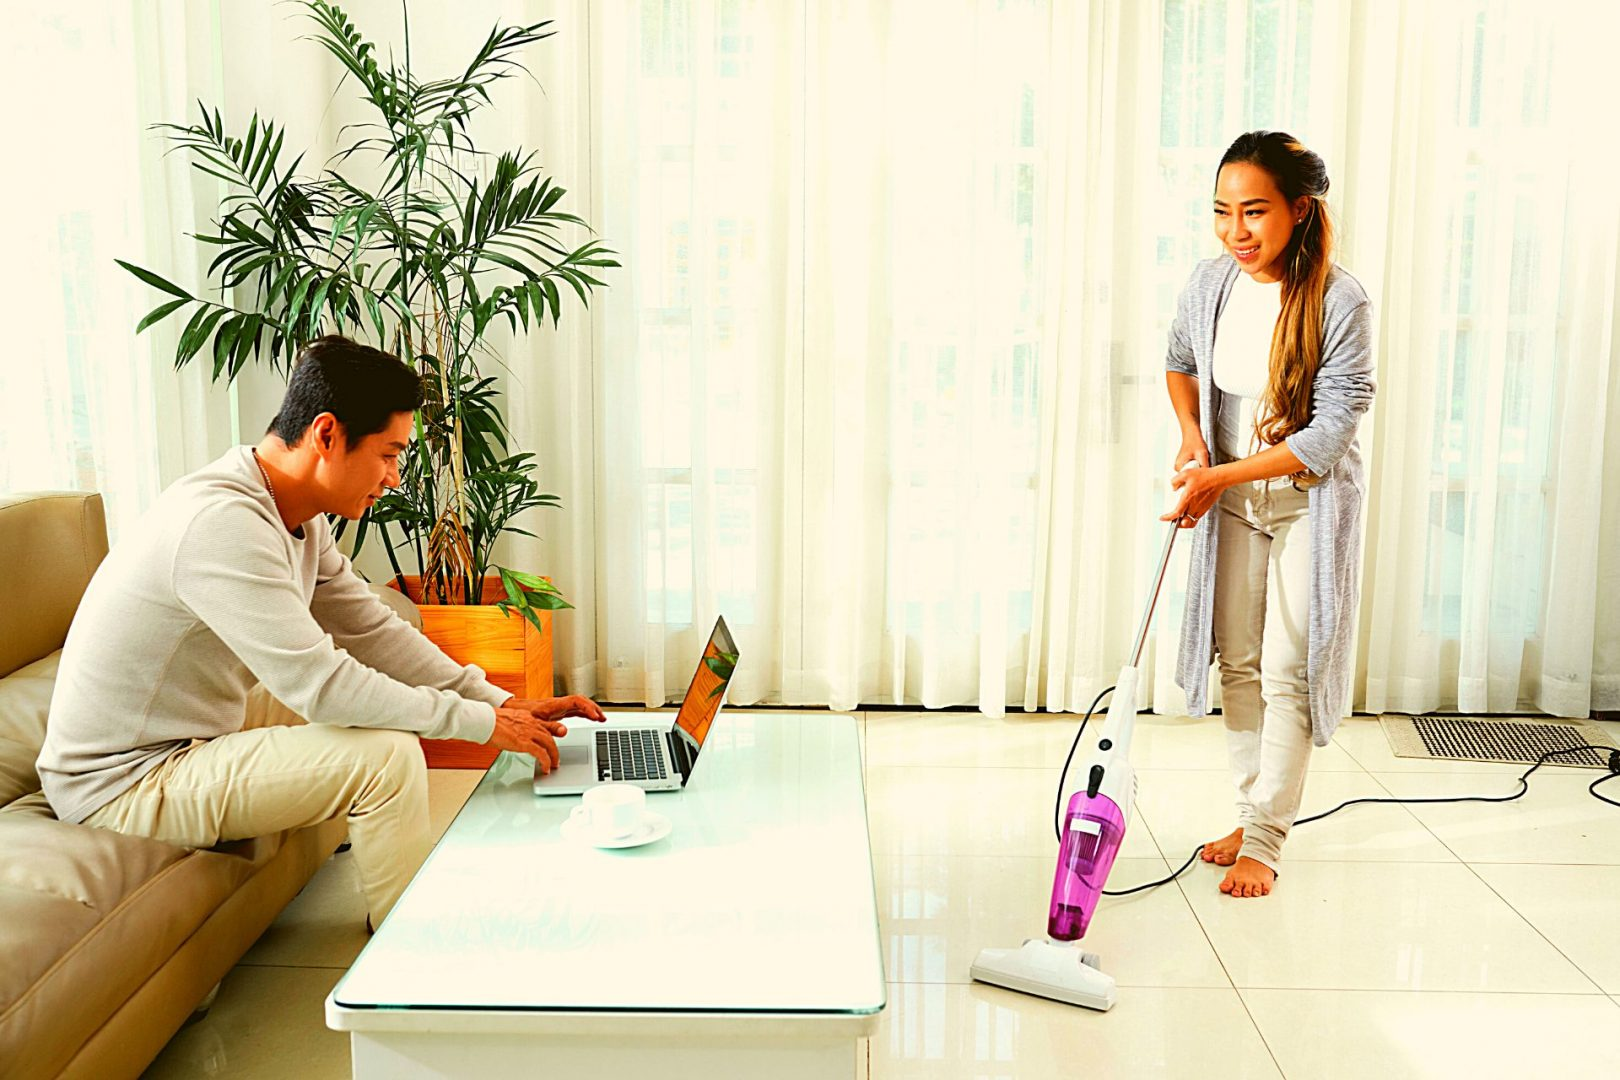 WHEN IS AN APPROPRIATE TIME TO VACUUM AN APARTMENT?